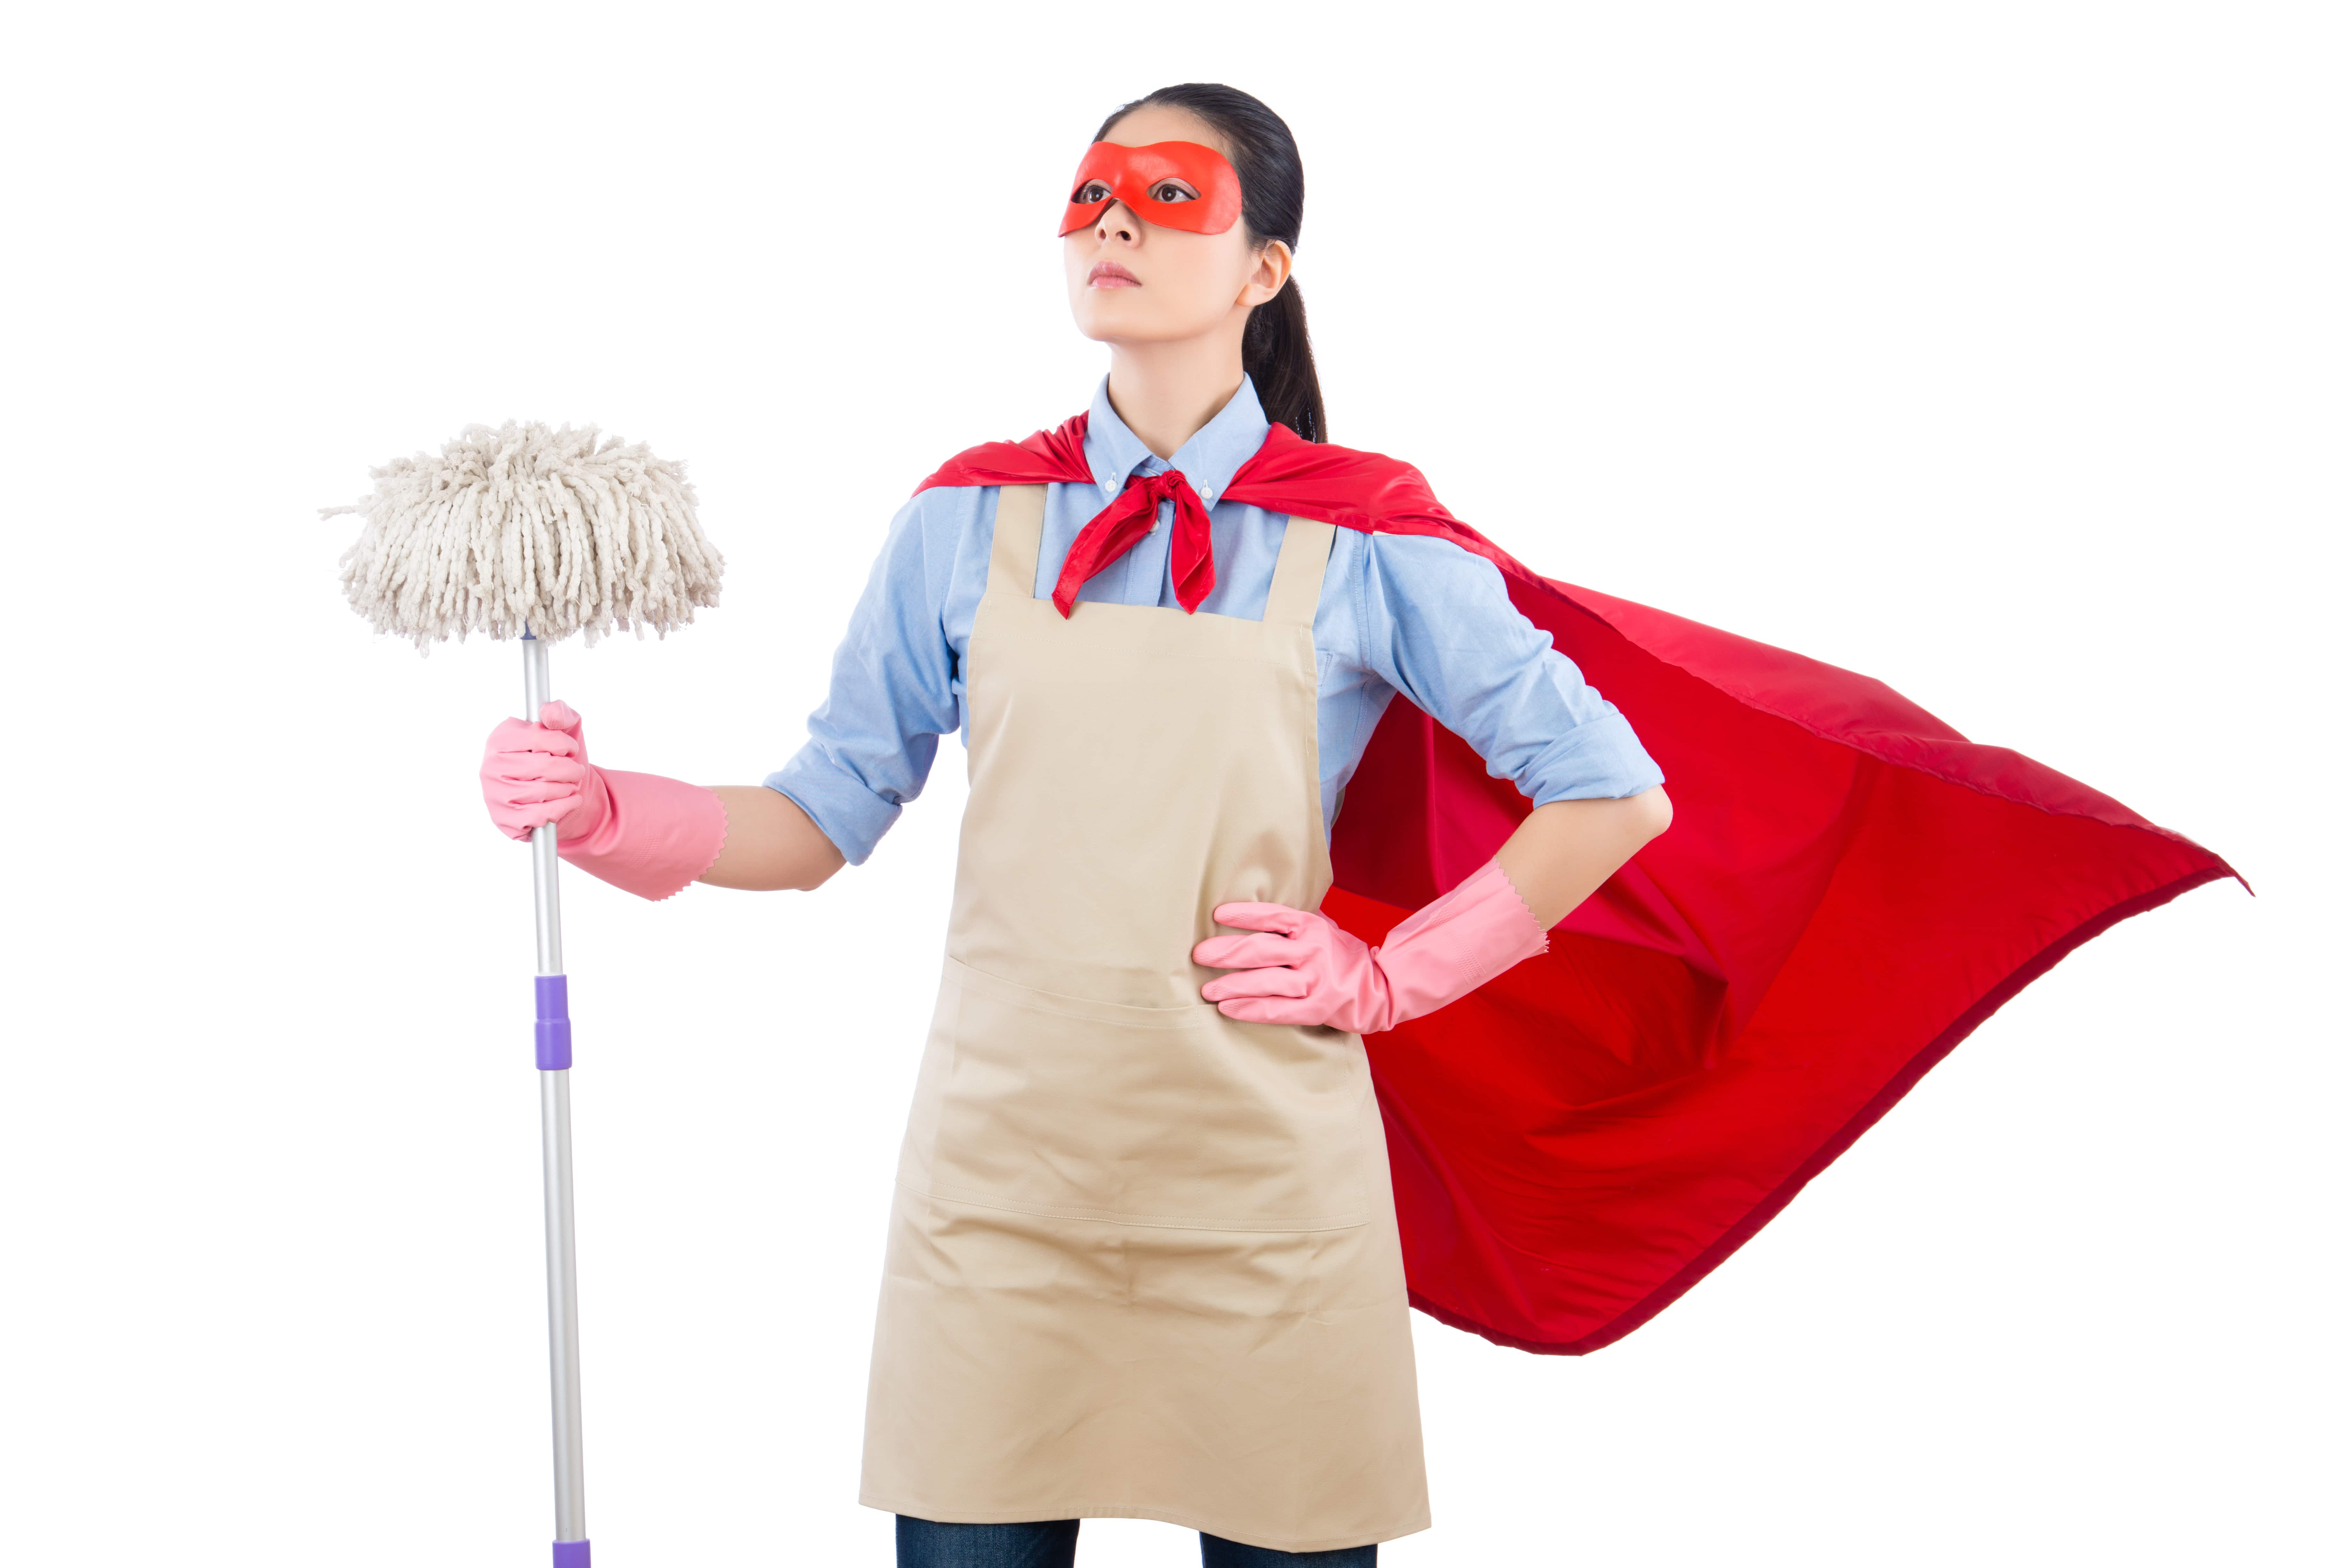 Image of woman in cape holding a mop